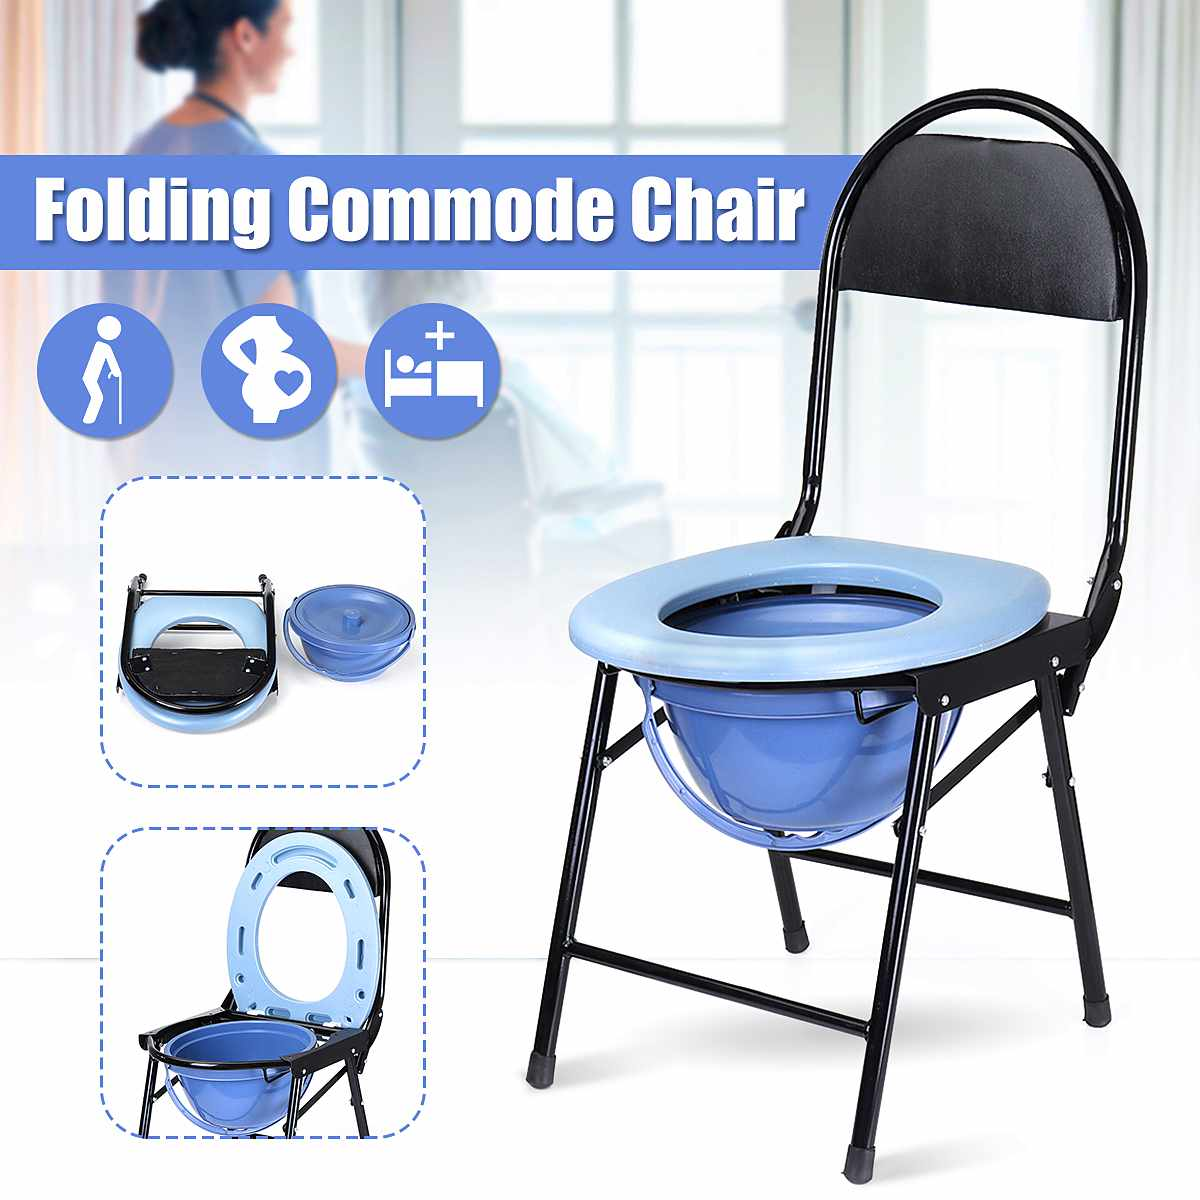 Portable Folding Bedside Bathroom Potty Toilet Convenient Commode Seat Shower Chair No-slip Feet For Elderly Disabled People